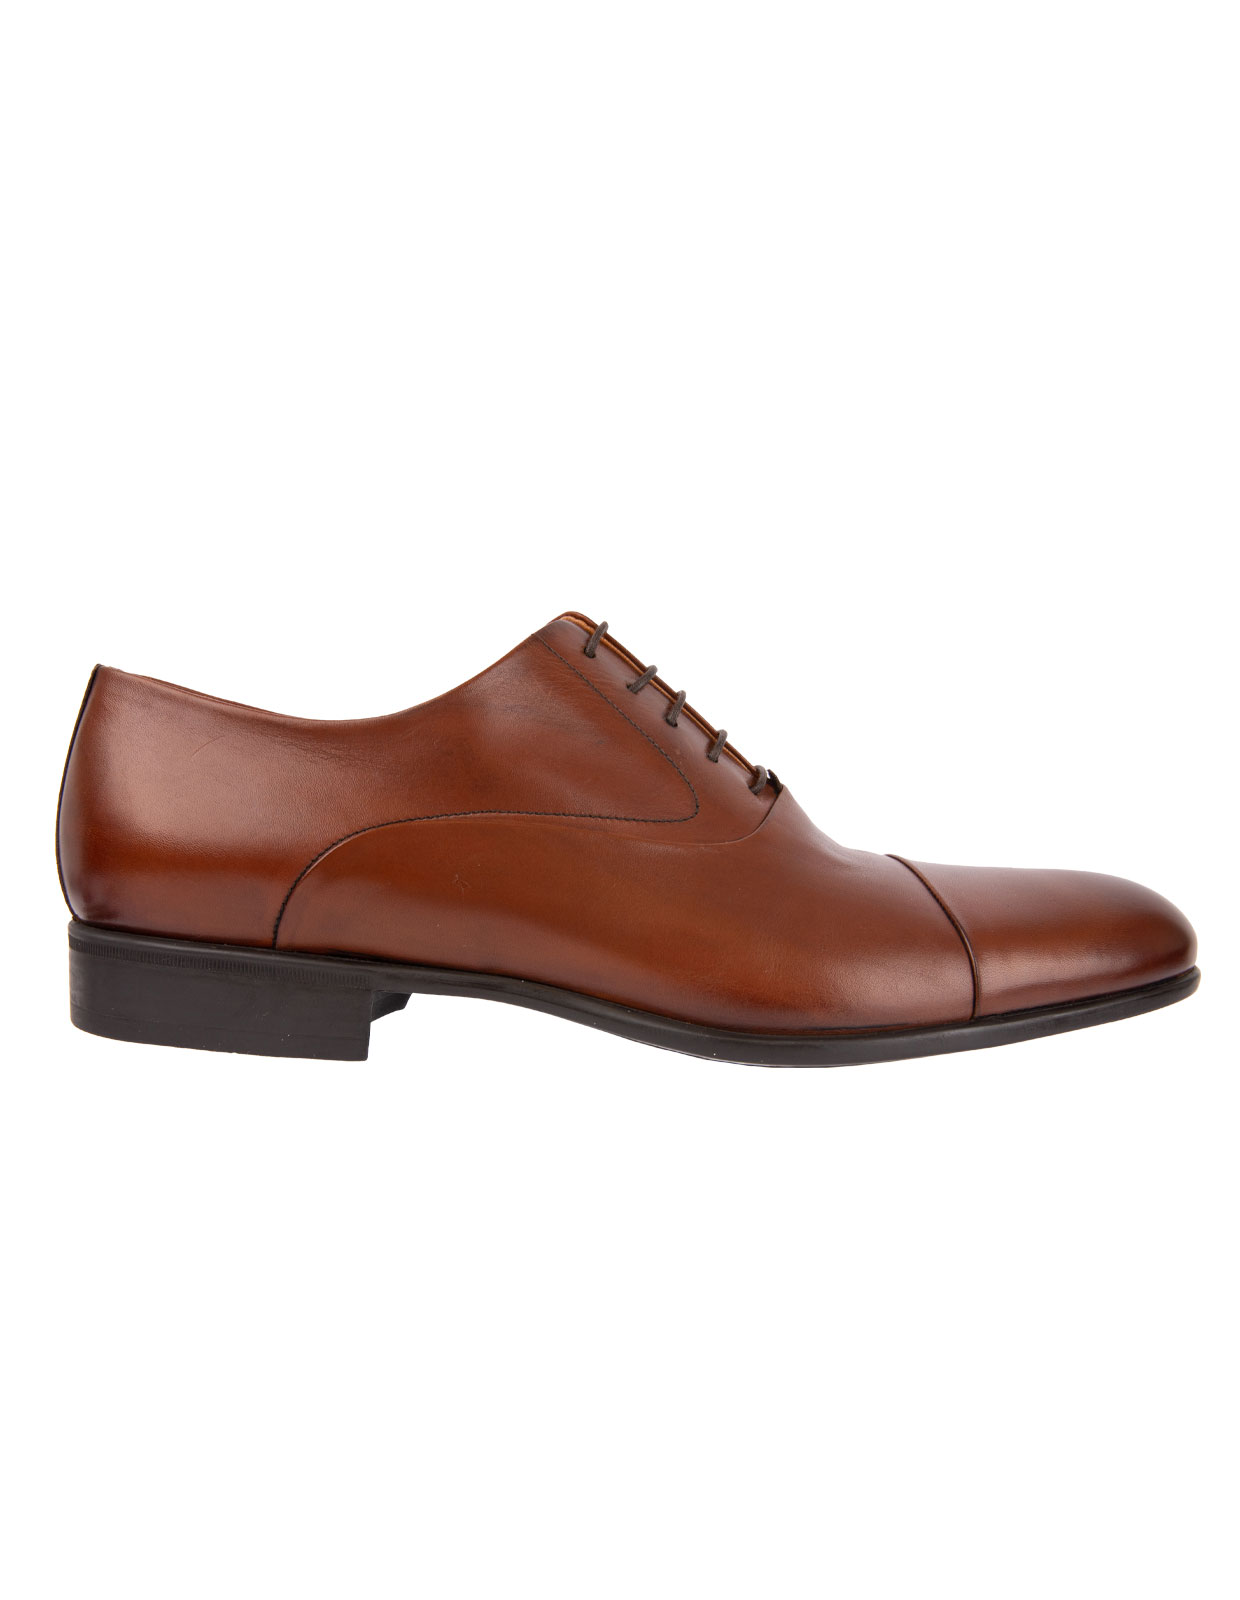 Dublin Oxford Shoes Calfskin Rubber Sole Tan